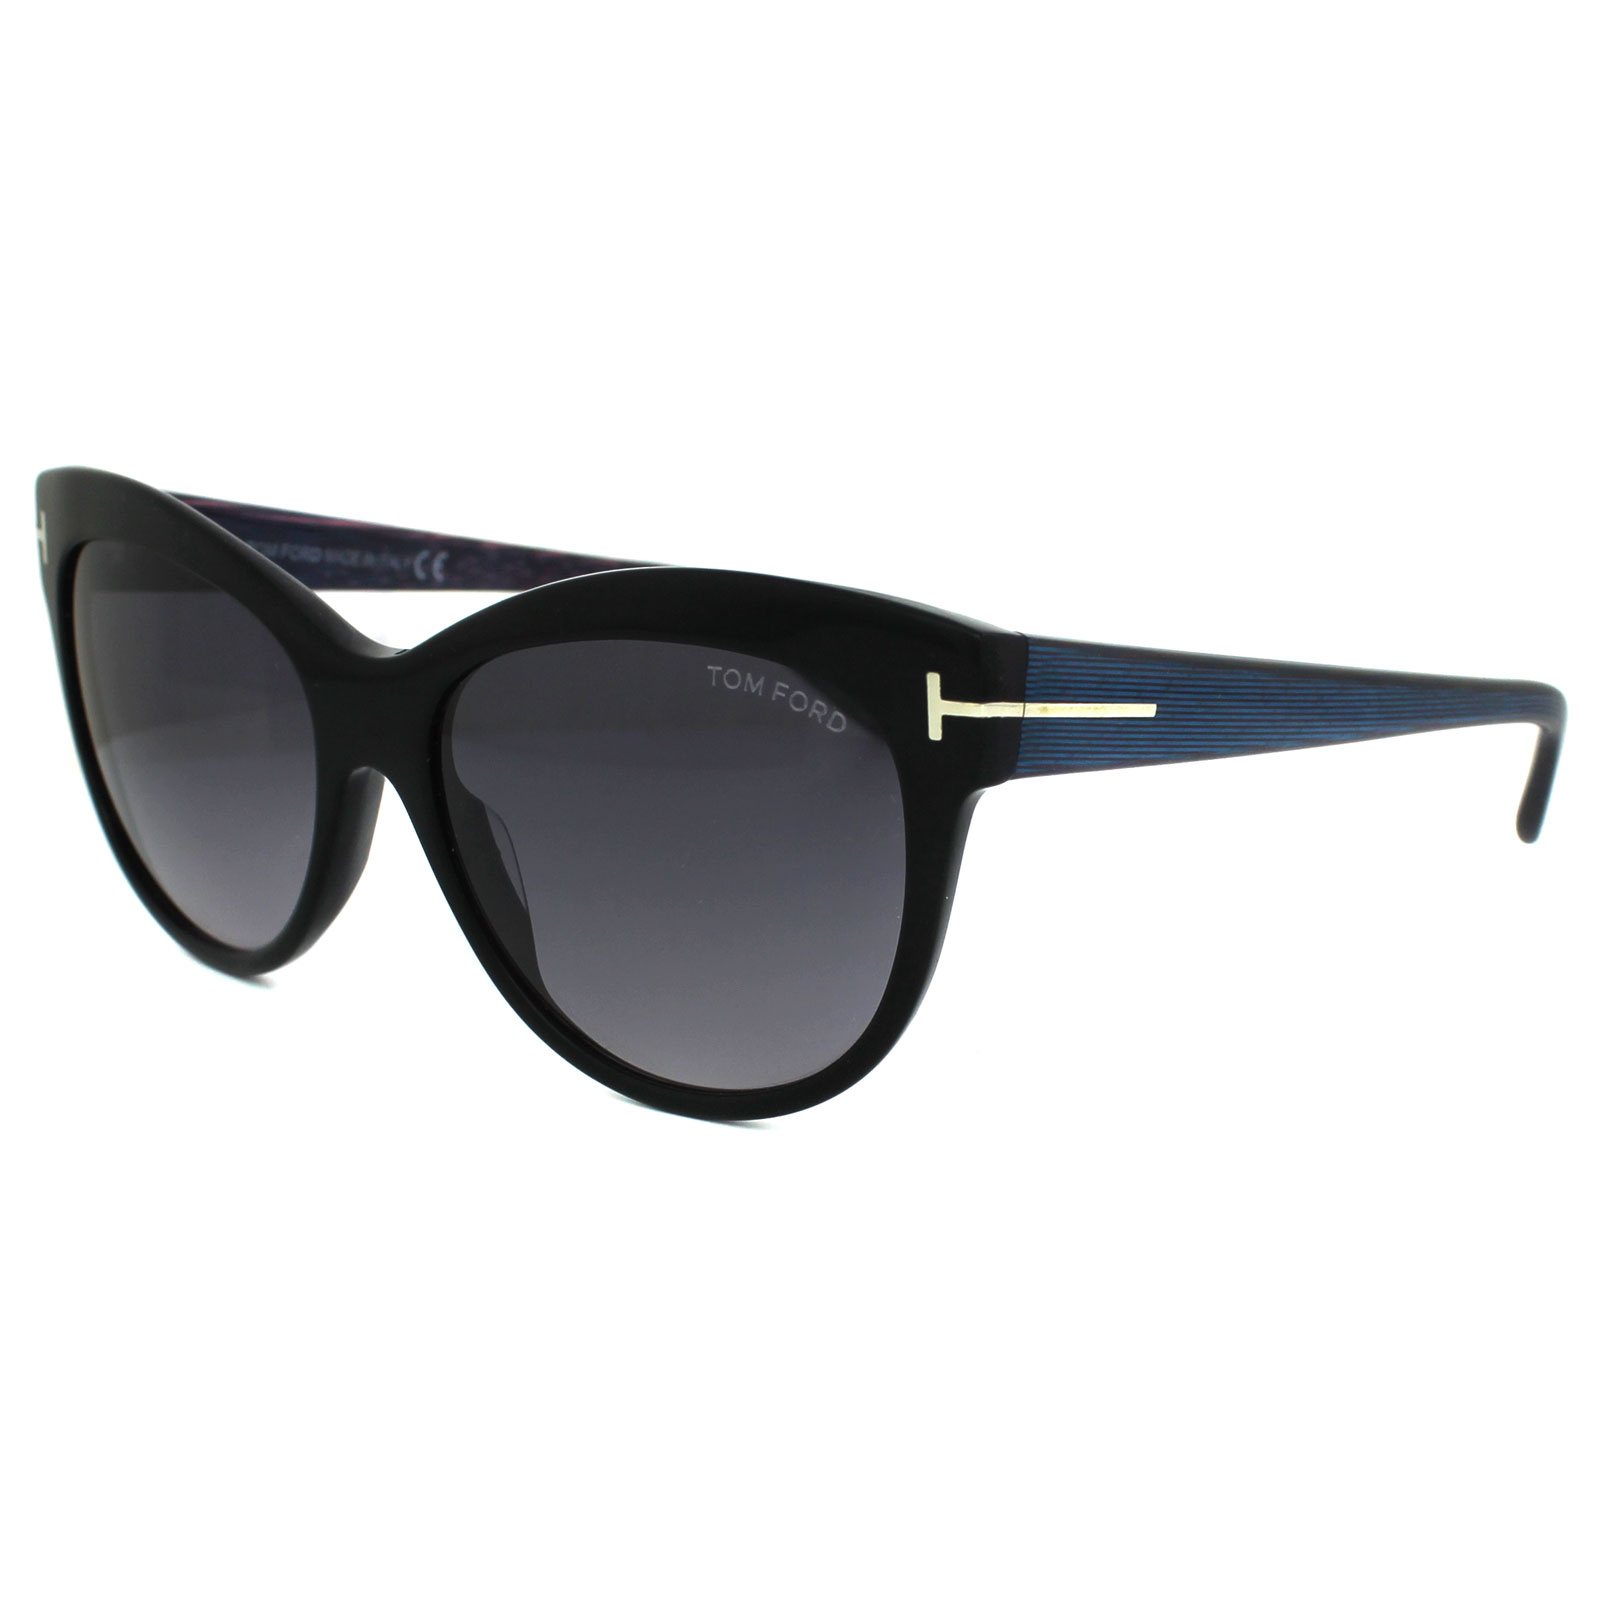 a7831dd39614 Details about Tom Ford Sunglasses 0430 Lily 05B Black   Peteroleum Smoke  Grey Gradient